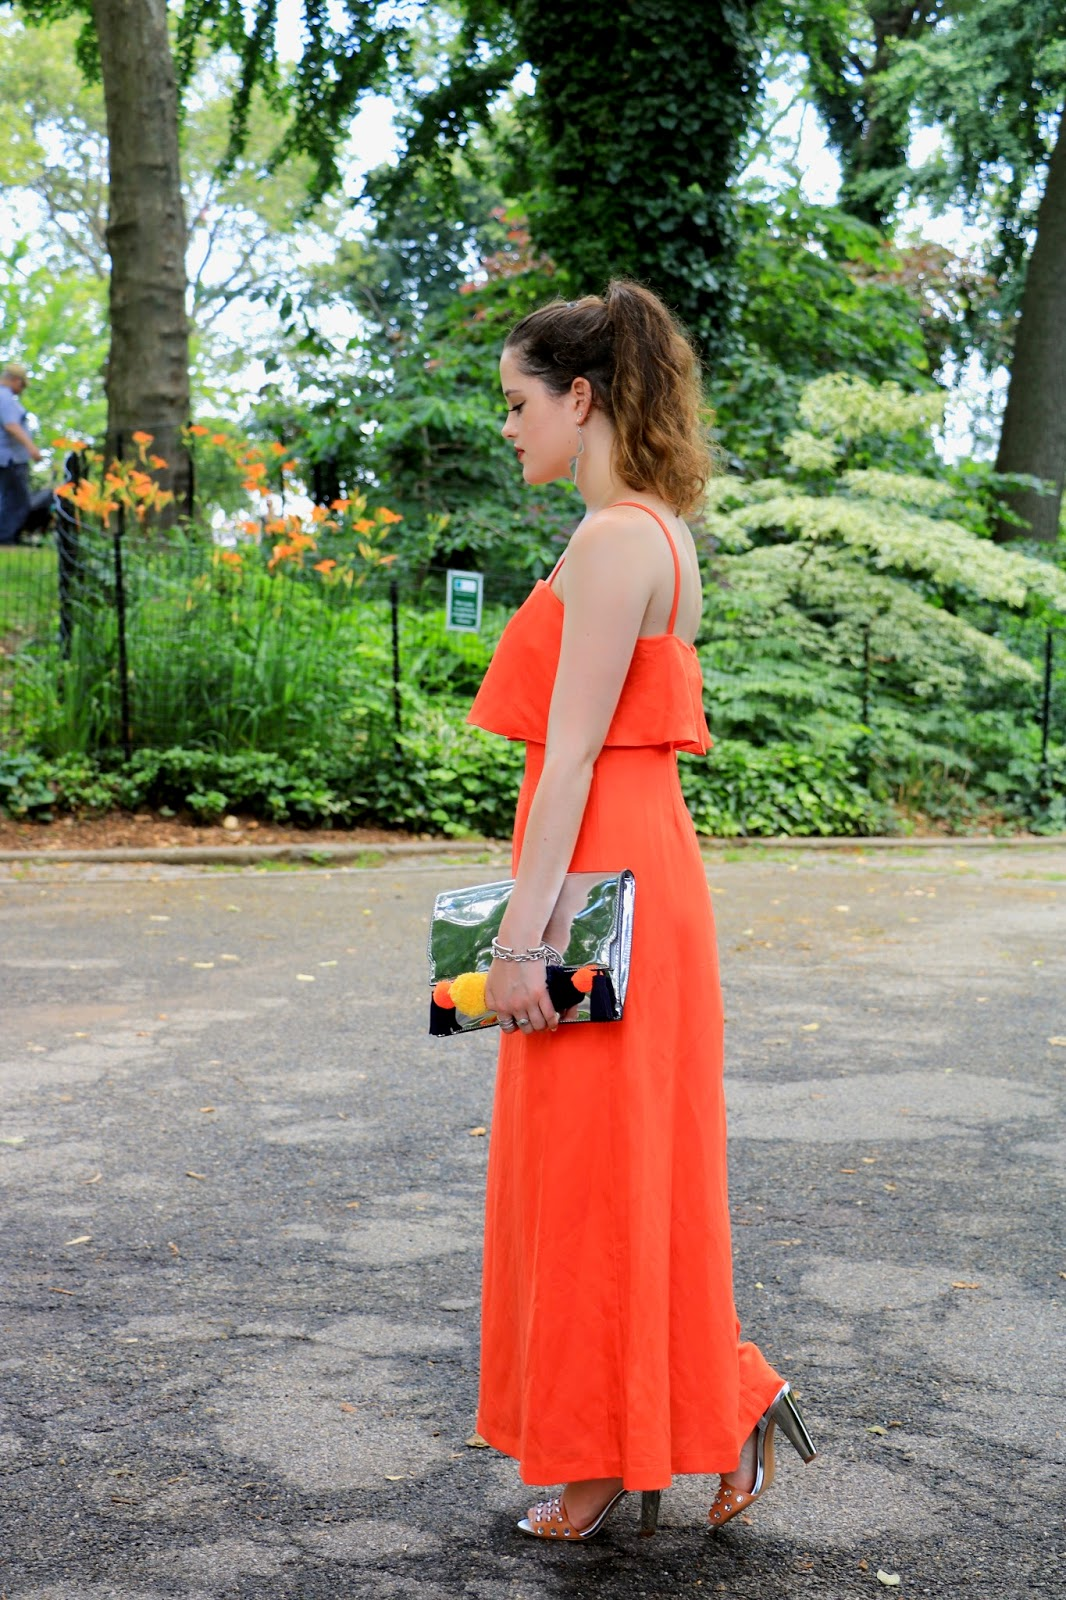 Fashion blogger Kathleen Harper of Kat's Fashion Fix wearing a summer wedding dress